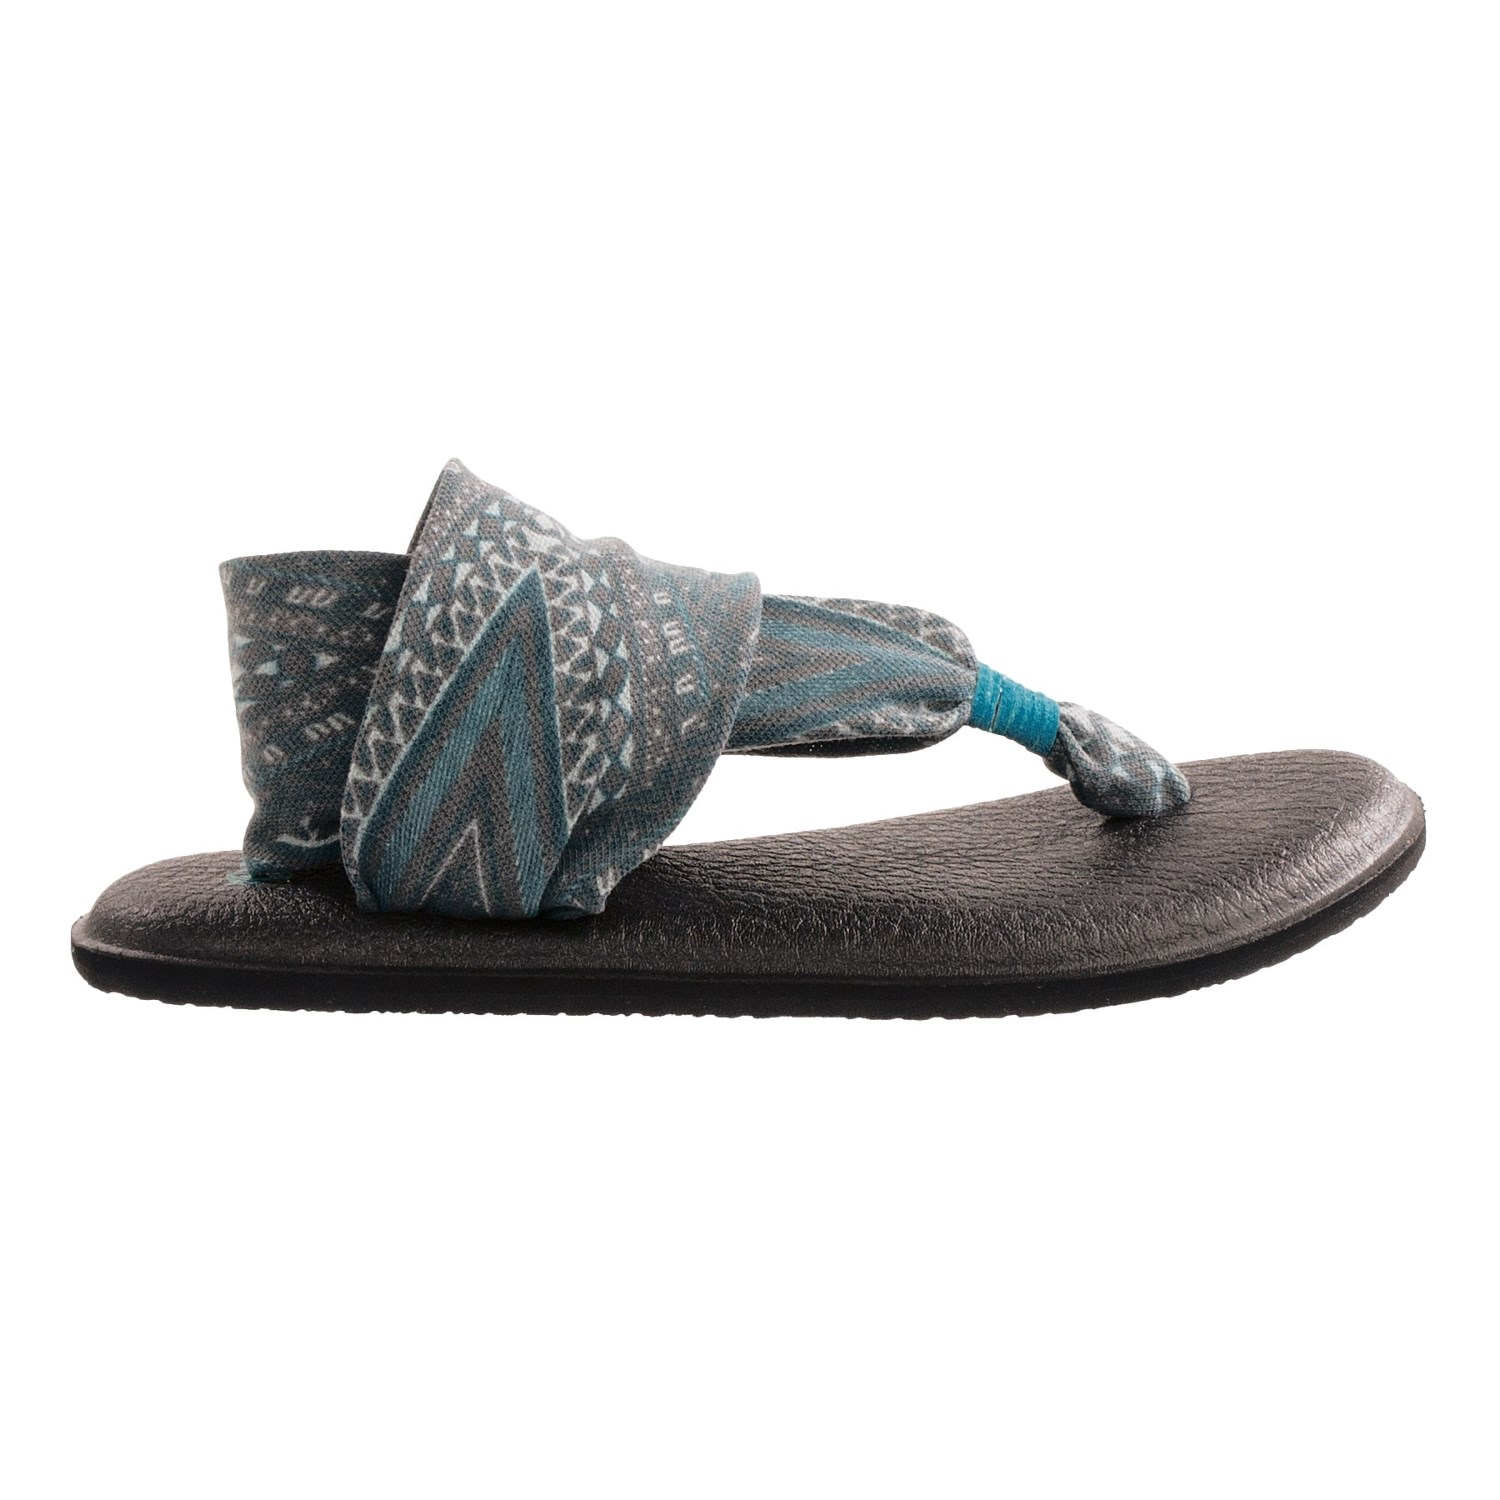 Sanuk Yoga Shoes Amazon: Sanuk Yoga Sling 2 Prints Sandals (For Women)